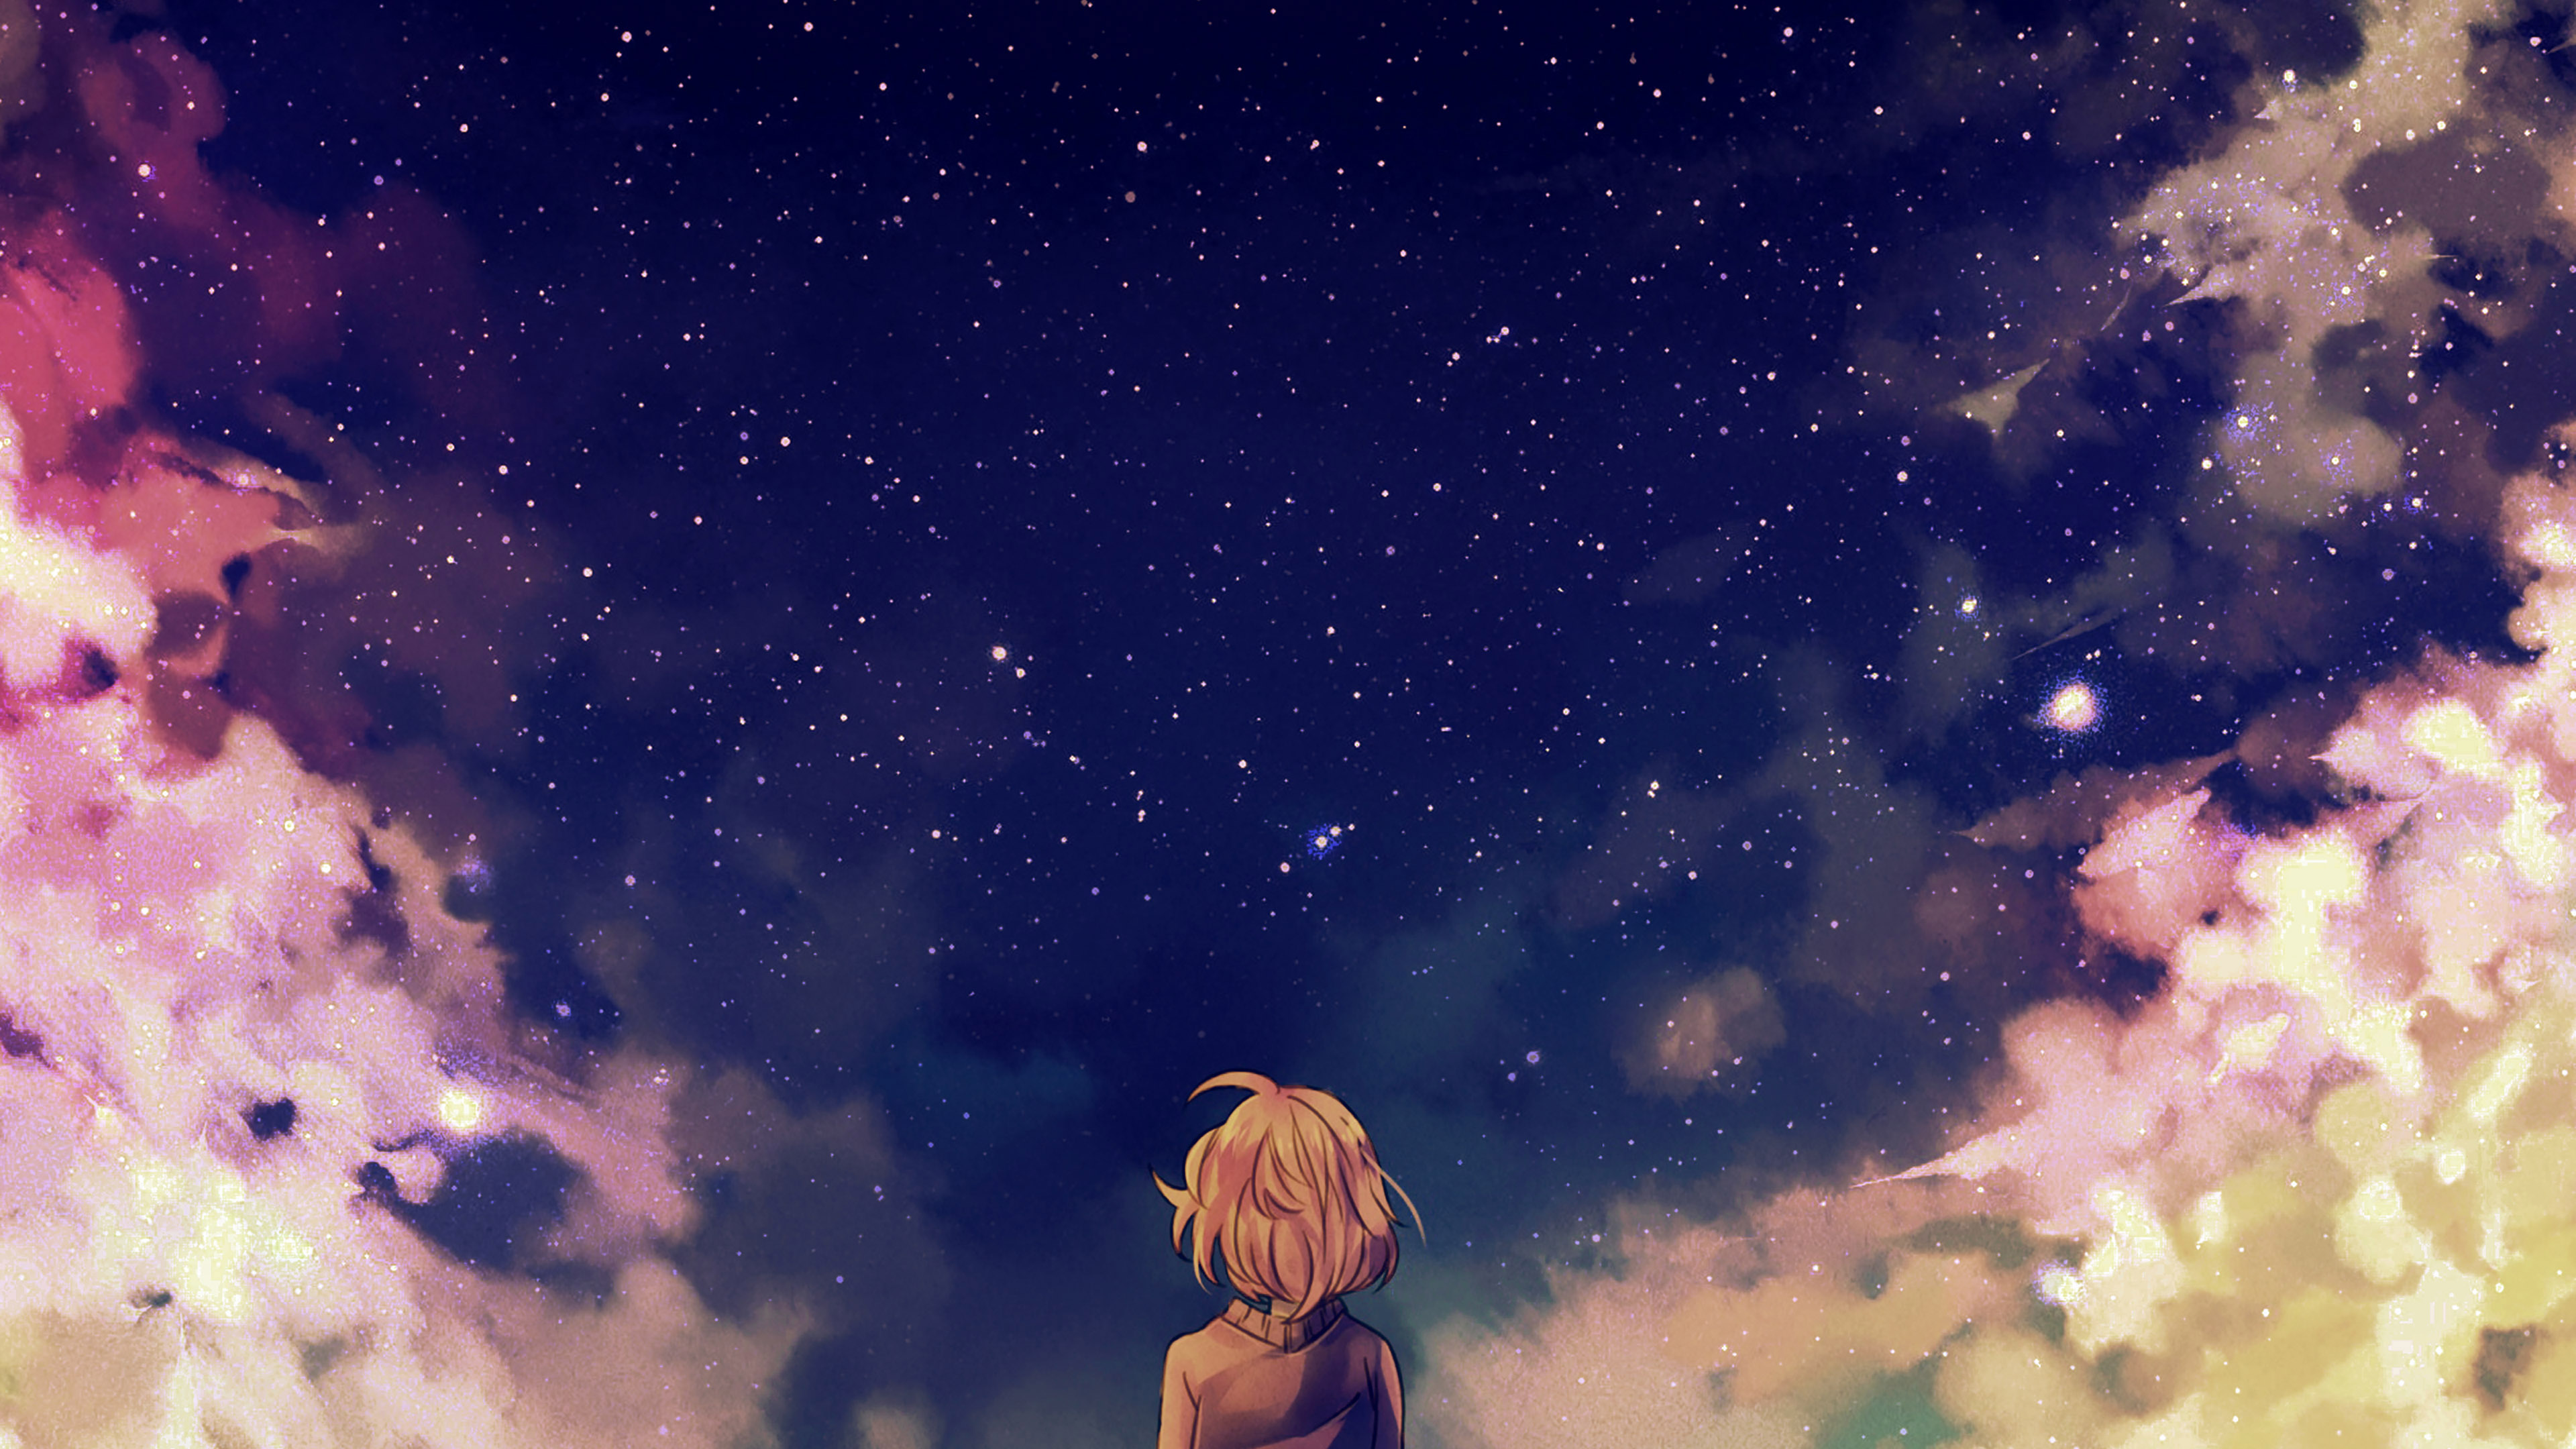 Cute Sad Cartoon Wallpapers Ad65 Starry Space Illust Anime Girl Wallpaper